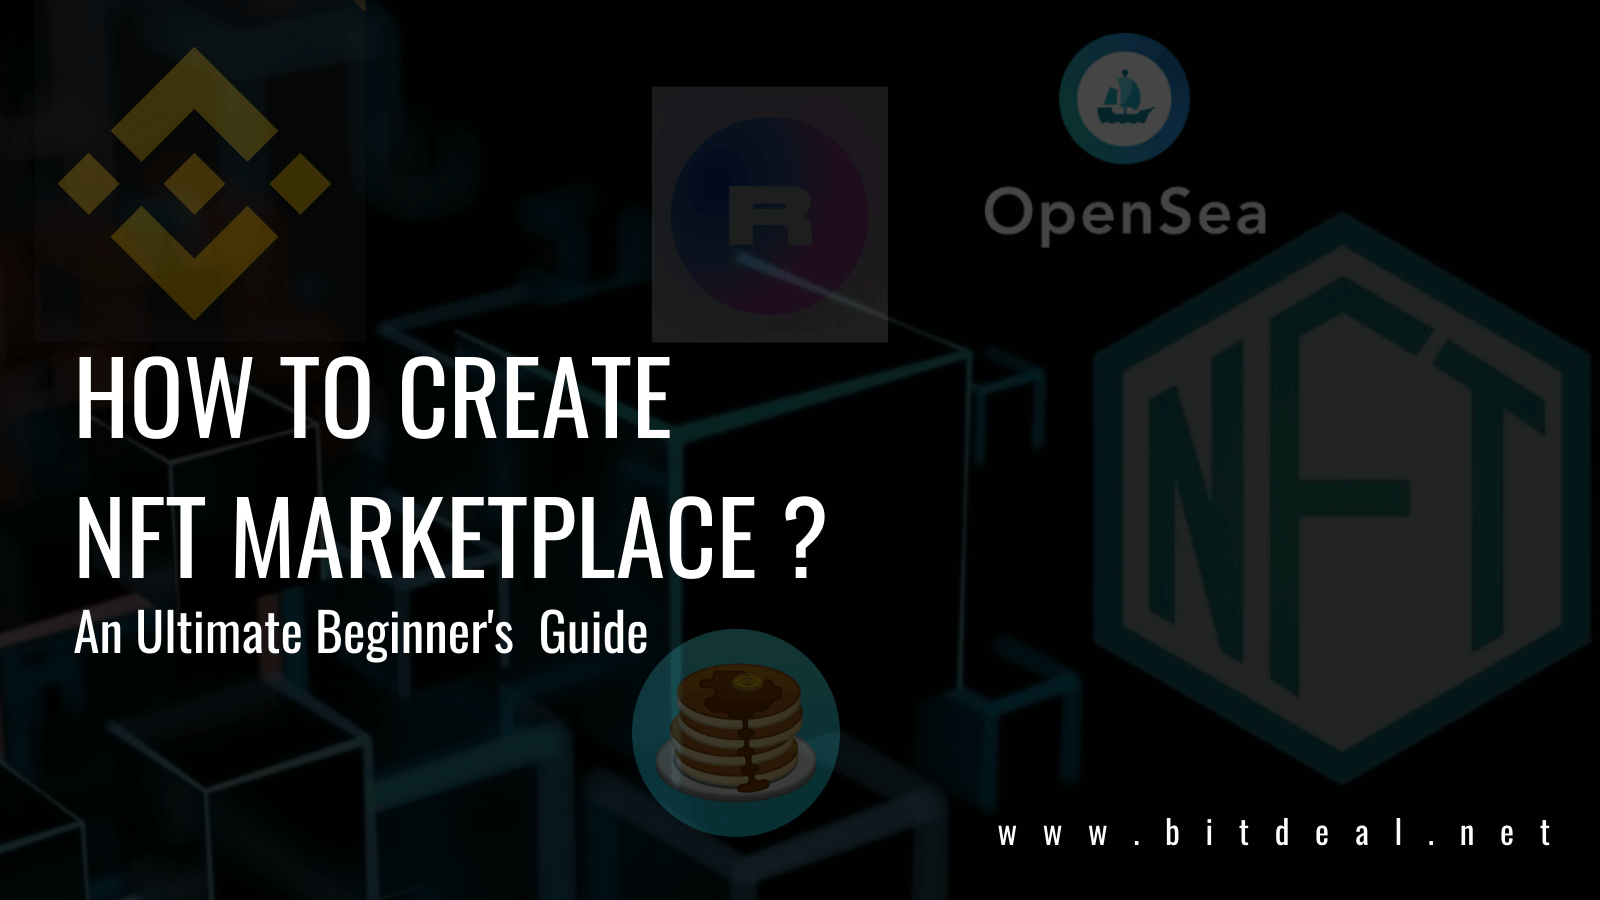 How To Build Your Own NFT Marketplace Like Opensea, Rarible, Binance NFT ?